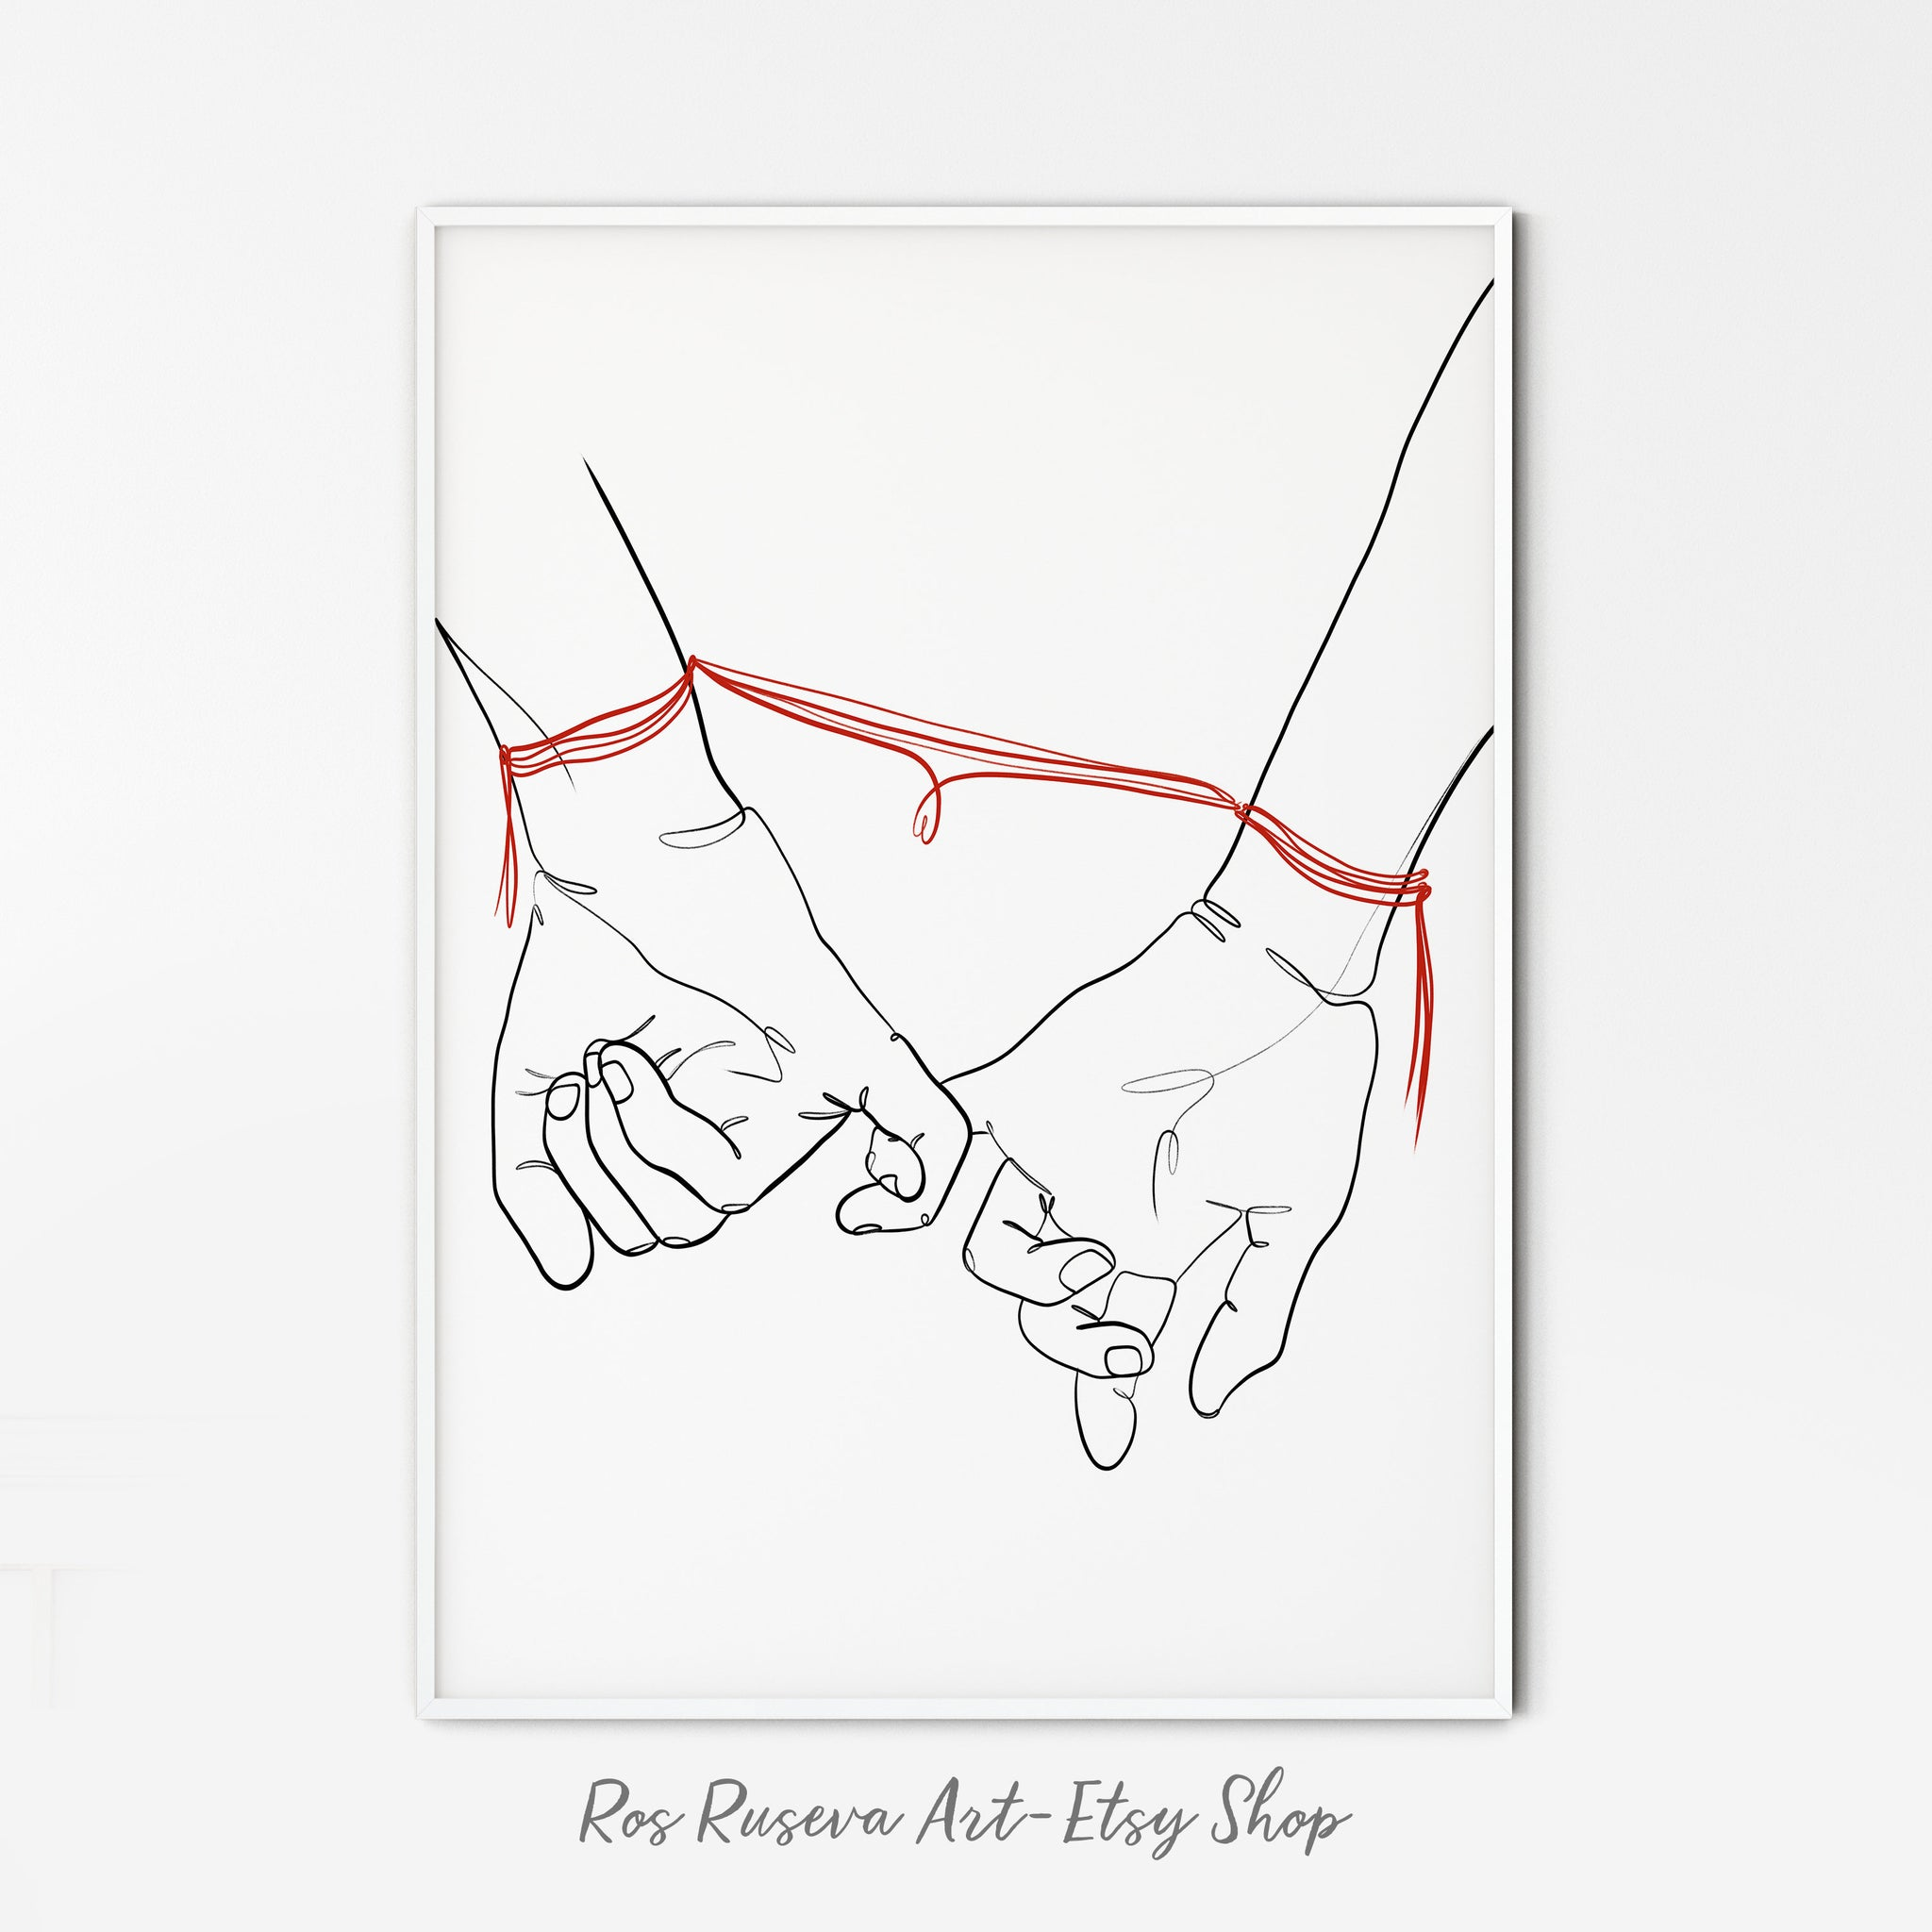 Holding hands with red thread, One Line Art, One Line Drawing, Couple Line Art, Romantic Wall Art, Hands Line Drawing, Minimal Line Art